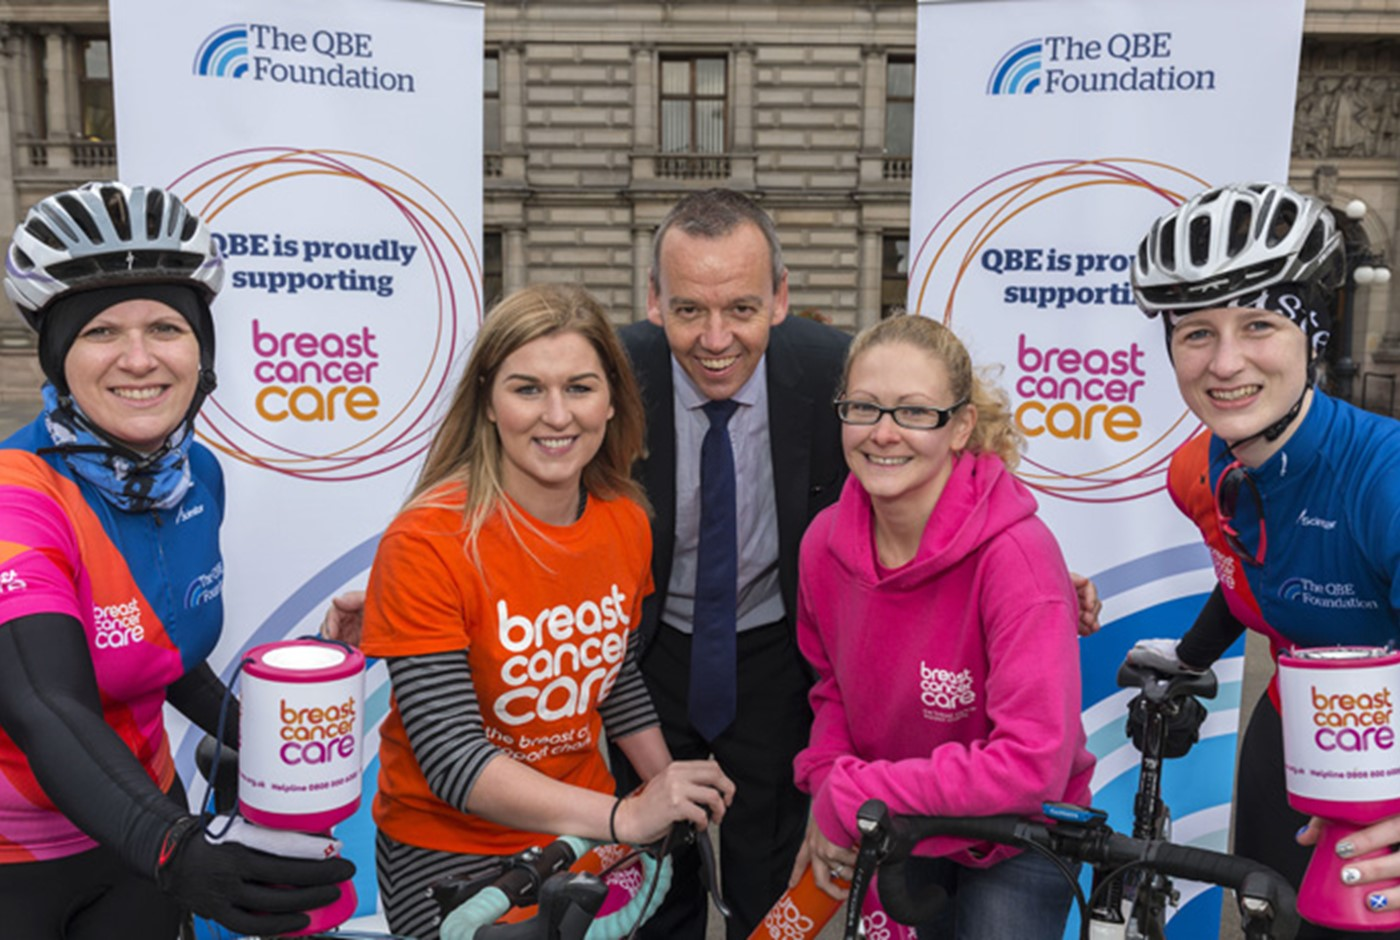 QBE picks Breast Cancer Care as new charity partner